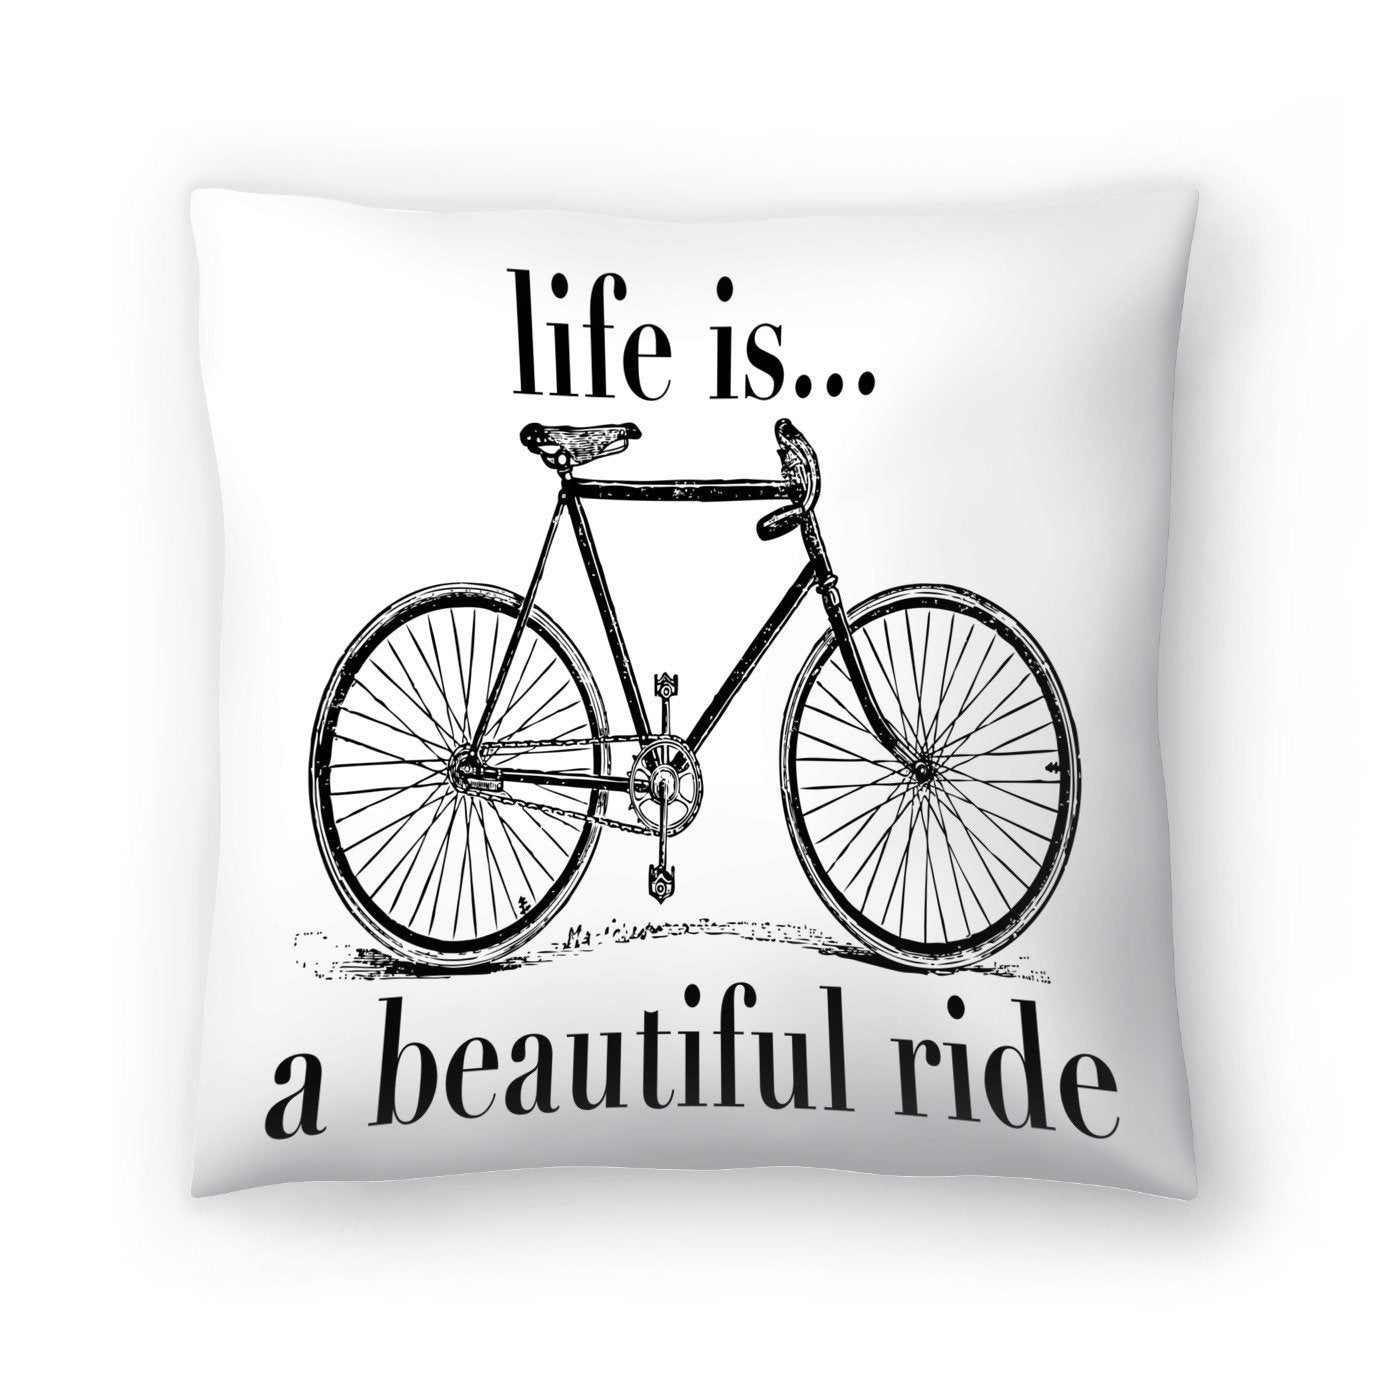 Bicycle Life Is Beautiful Ride Black by Amy Brinkman Decorative Pillow - Decorative Pillow - Americanflat